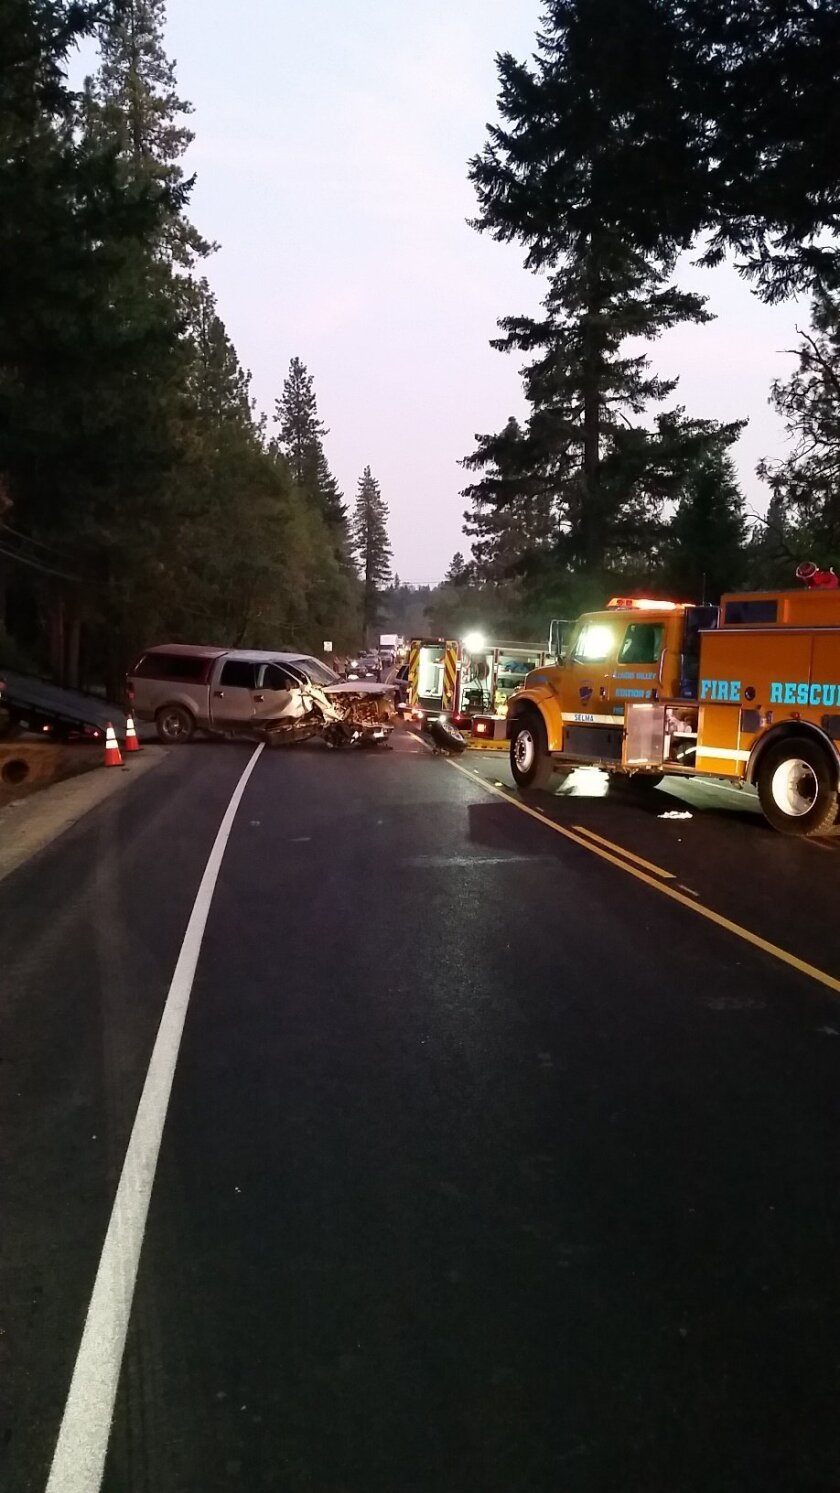 Three Costa Mesa residents in their 20s were killed and two were injured in a head-on crash Sept. 10 on an Oregon highway, authorities said.